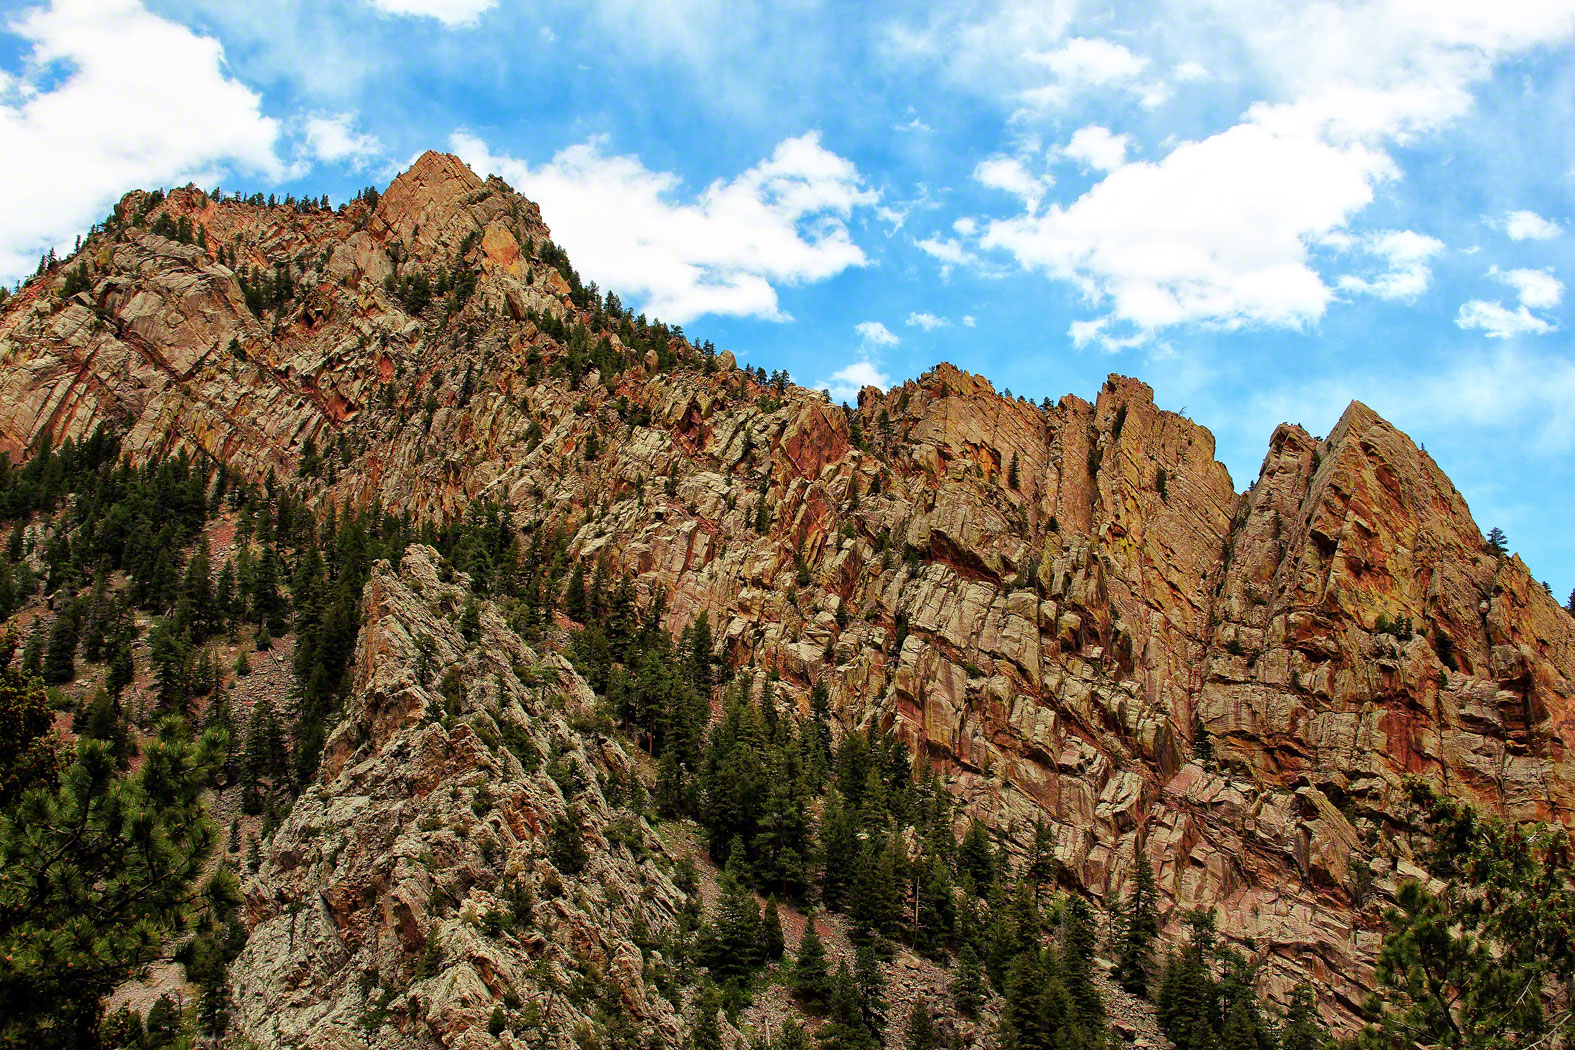 The Redgarden Wall leads your eye 7,240 ft to the top of Shirt Tail Peak.